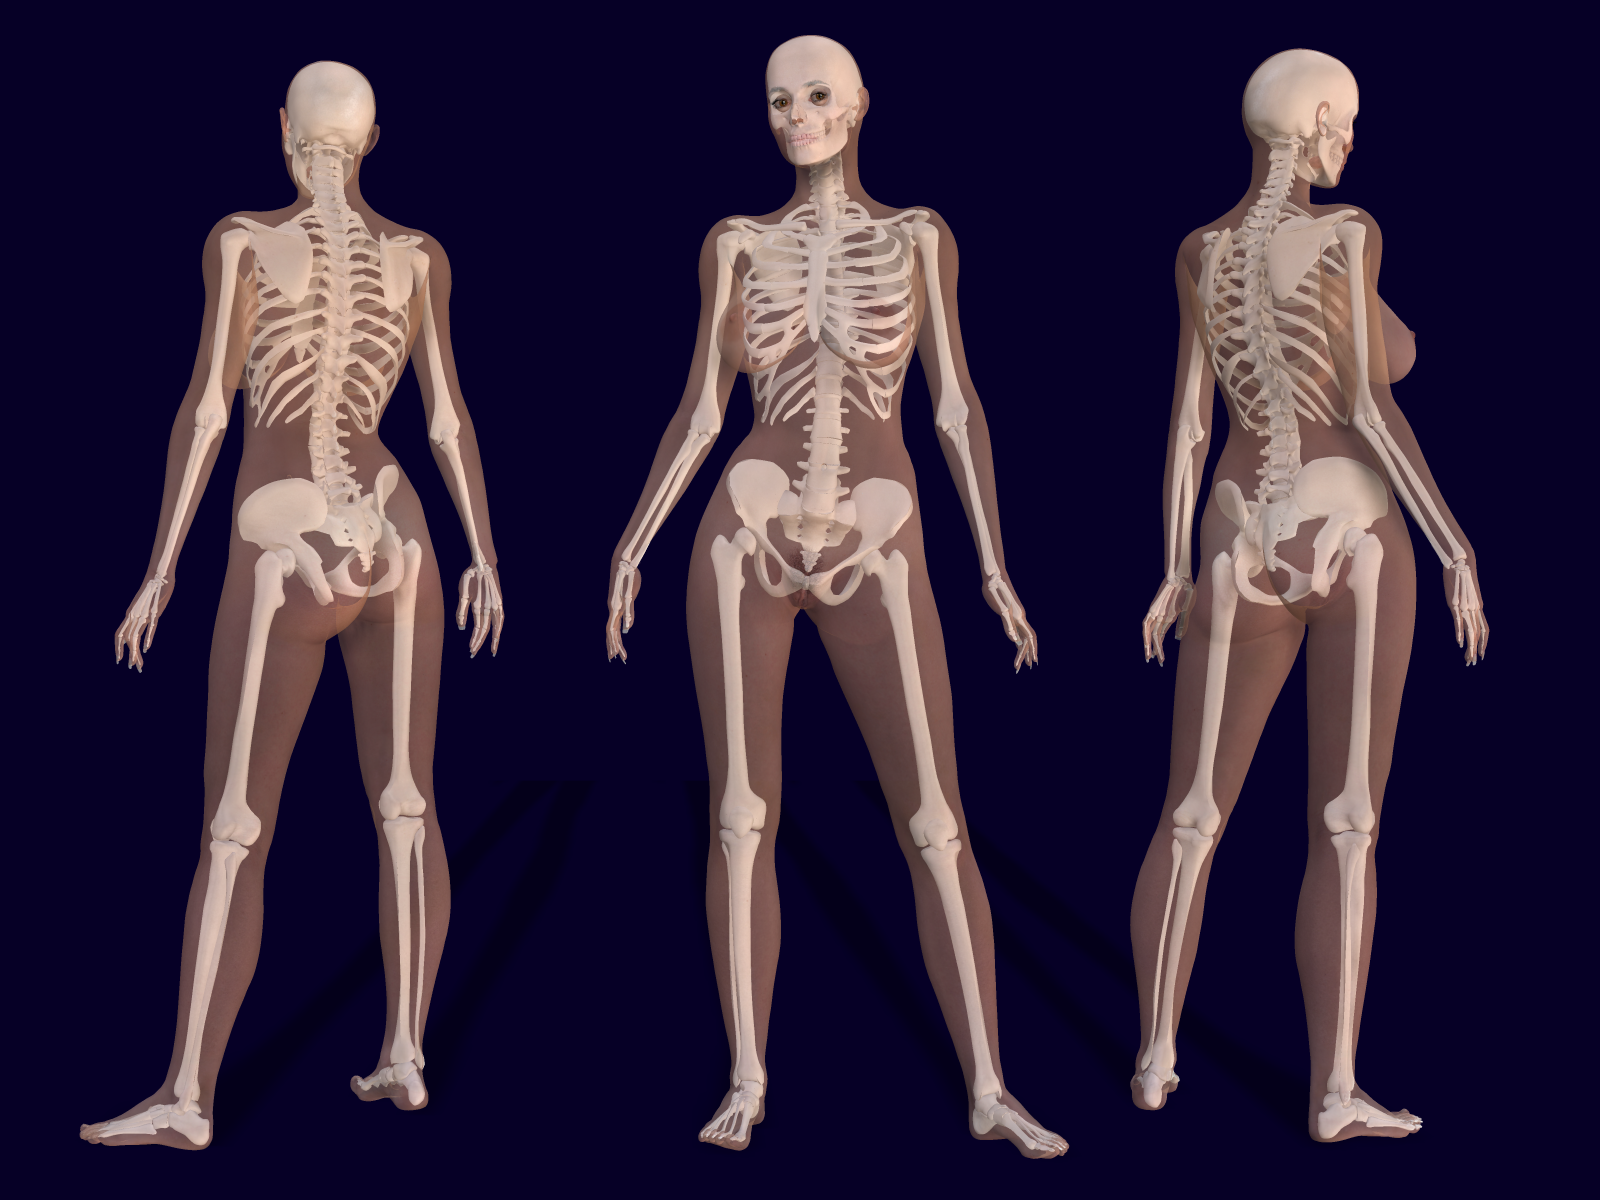 File:3D Female Skeleton Anatomy.png - Wikimedia Commons